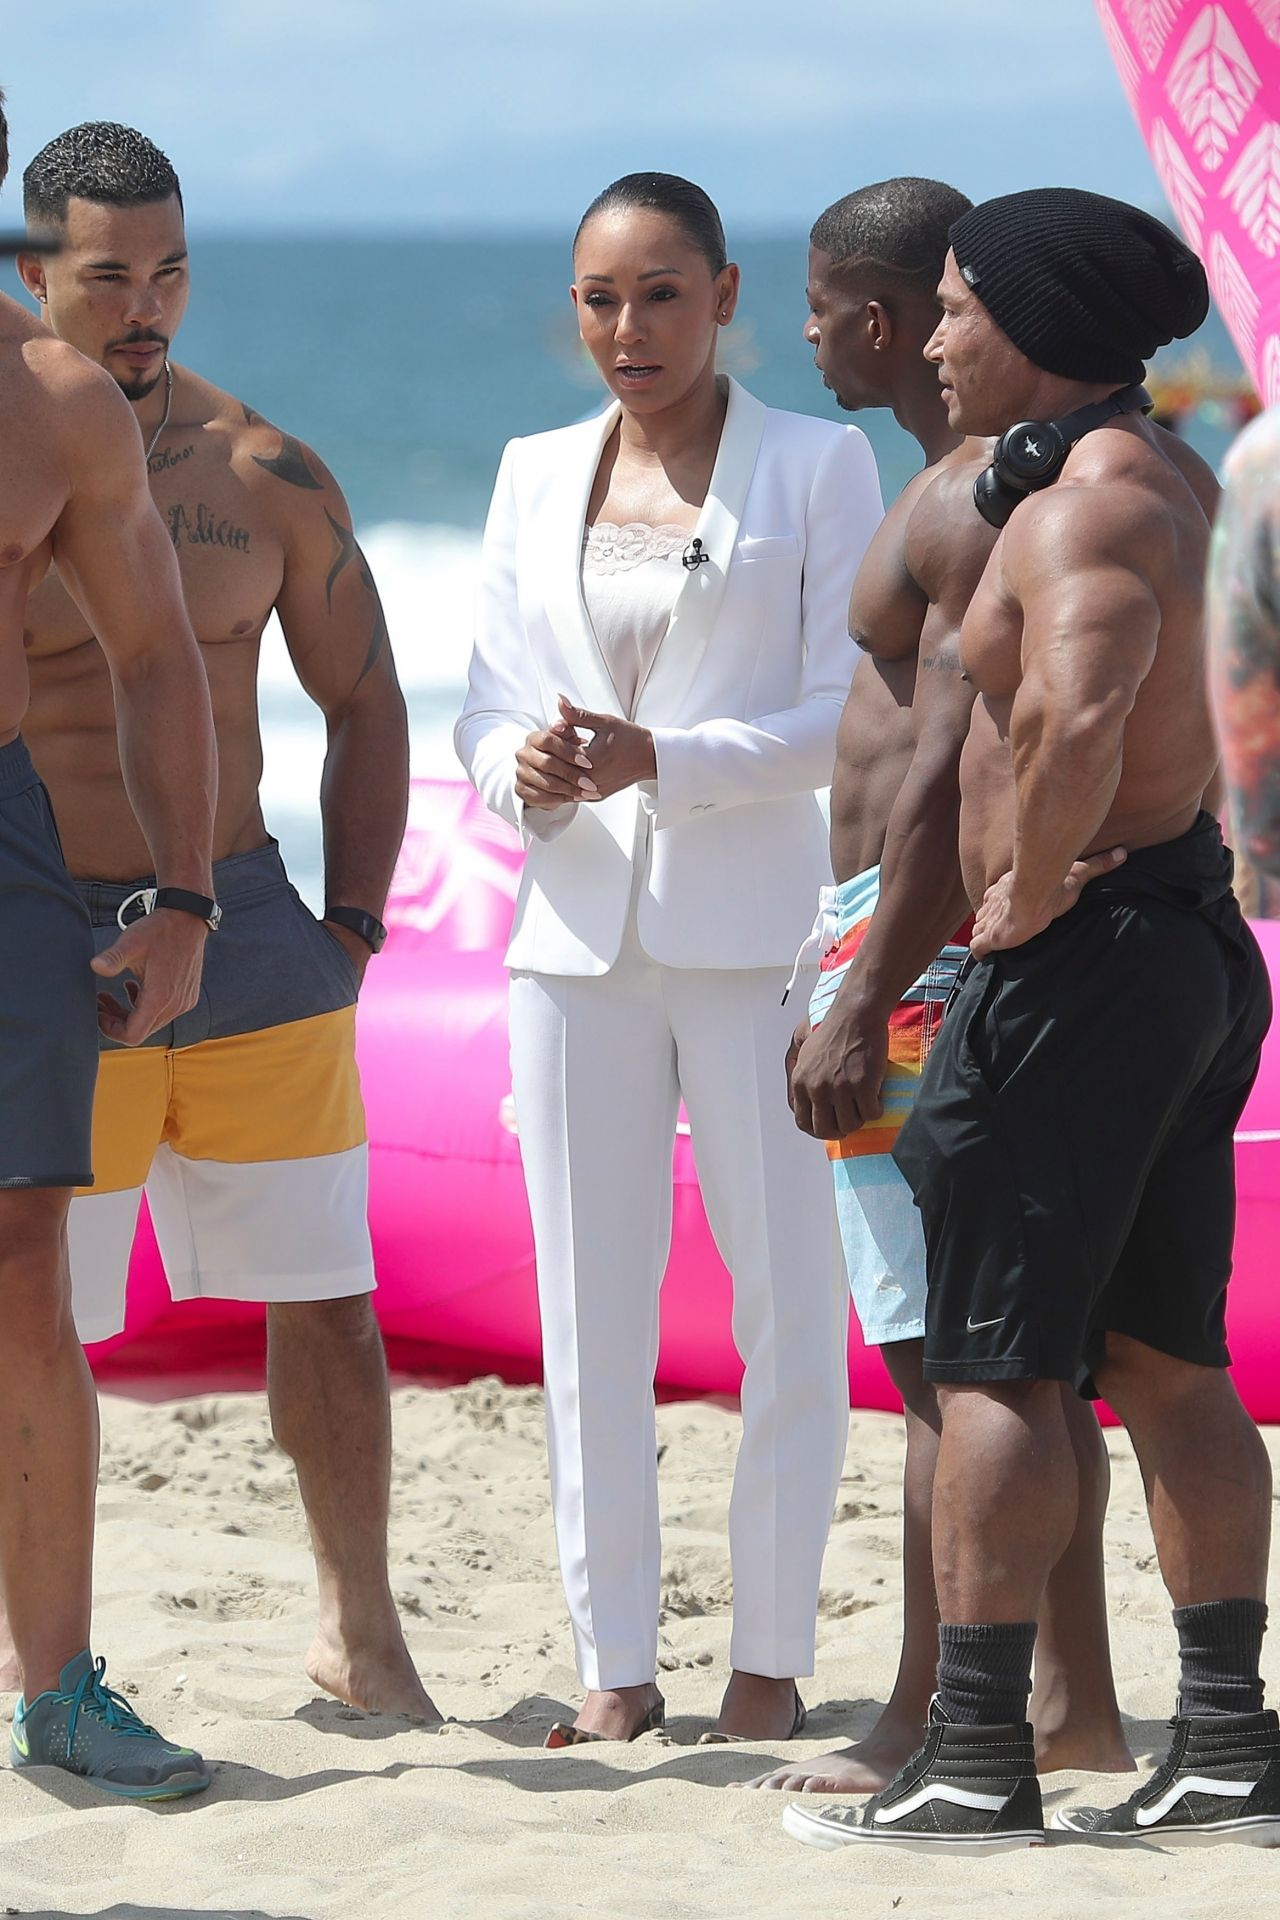 Melanie Brown Today Show Hosted By Kathie Gifford Hoda At Venice Beach In 05 25 2018